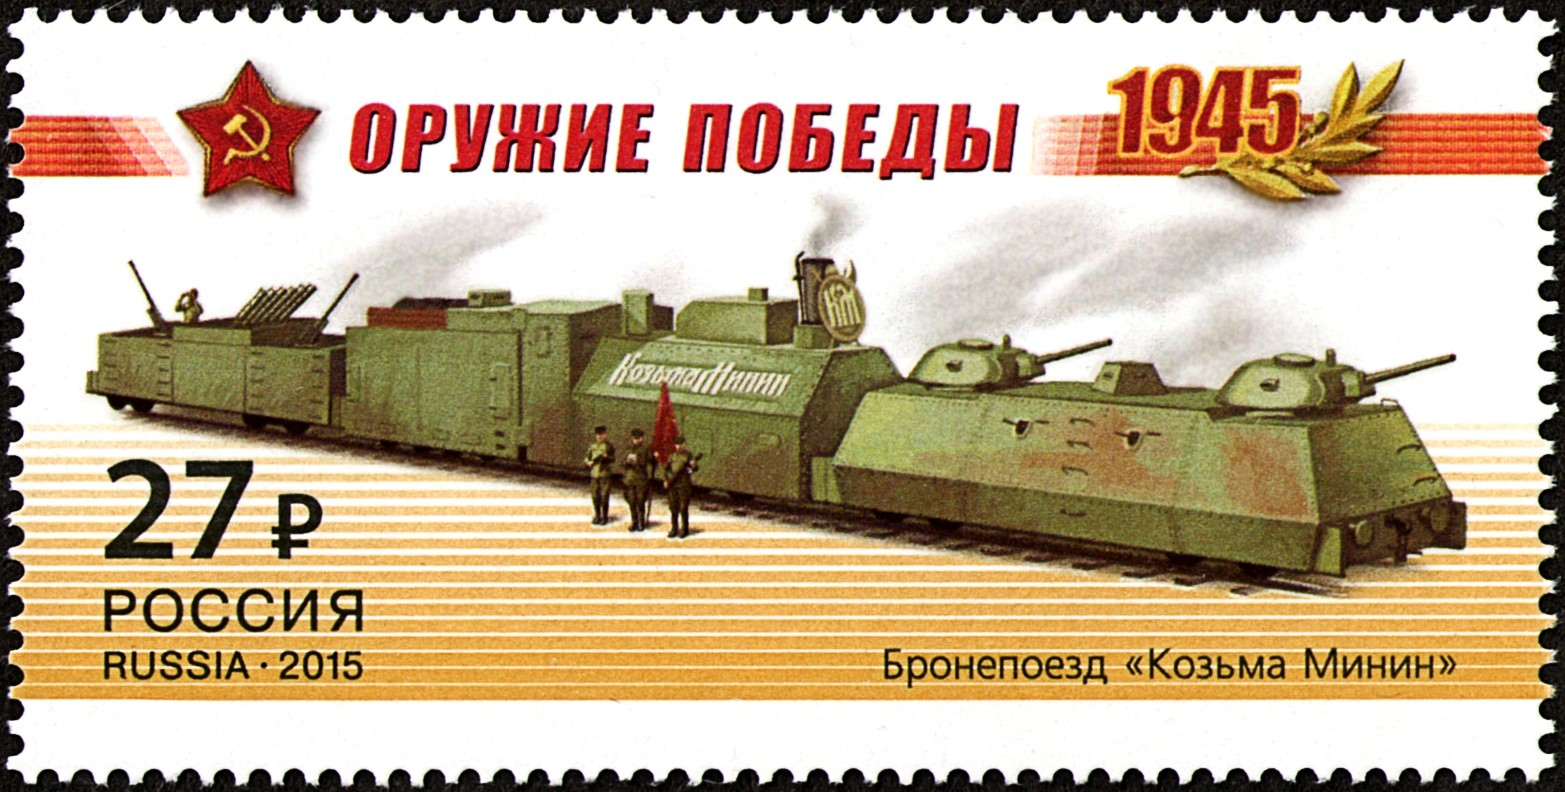 Armored Train Kozma Minin